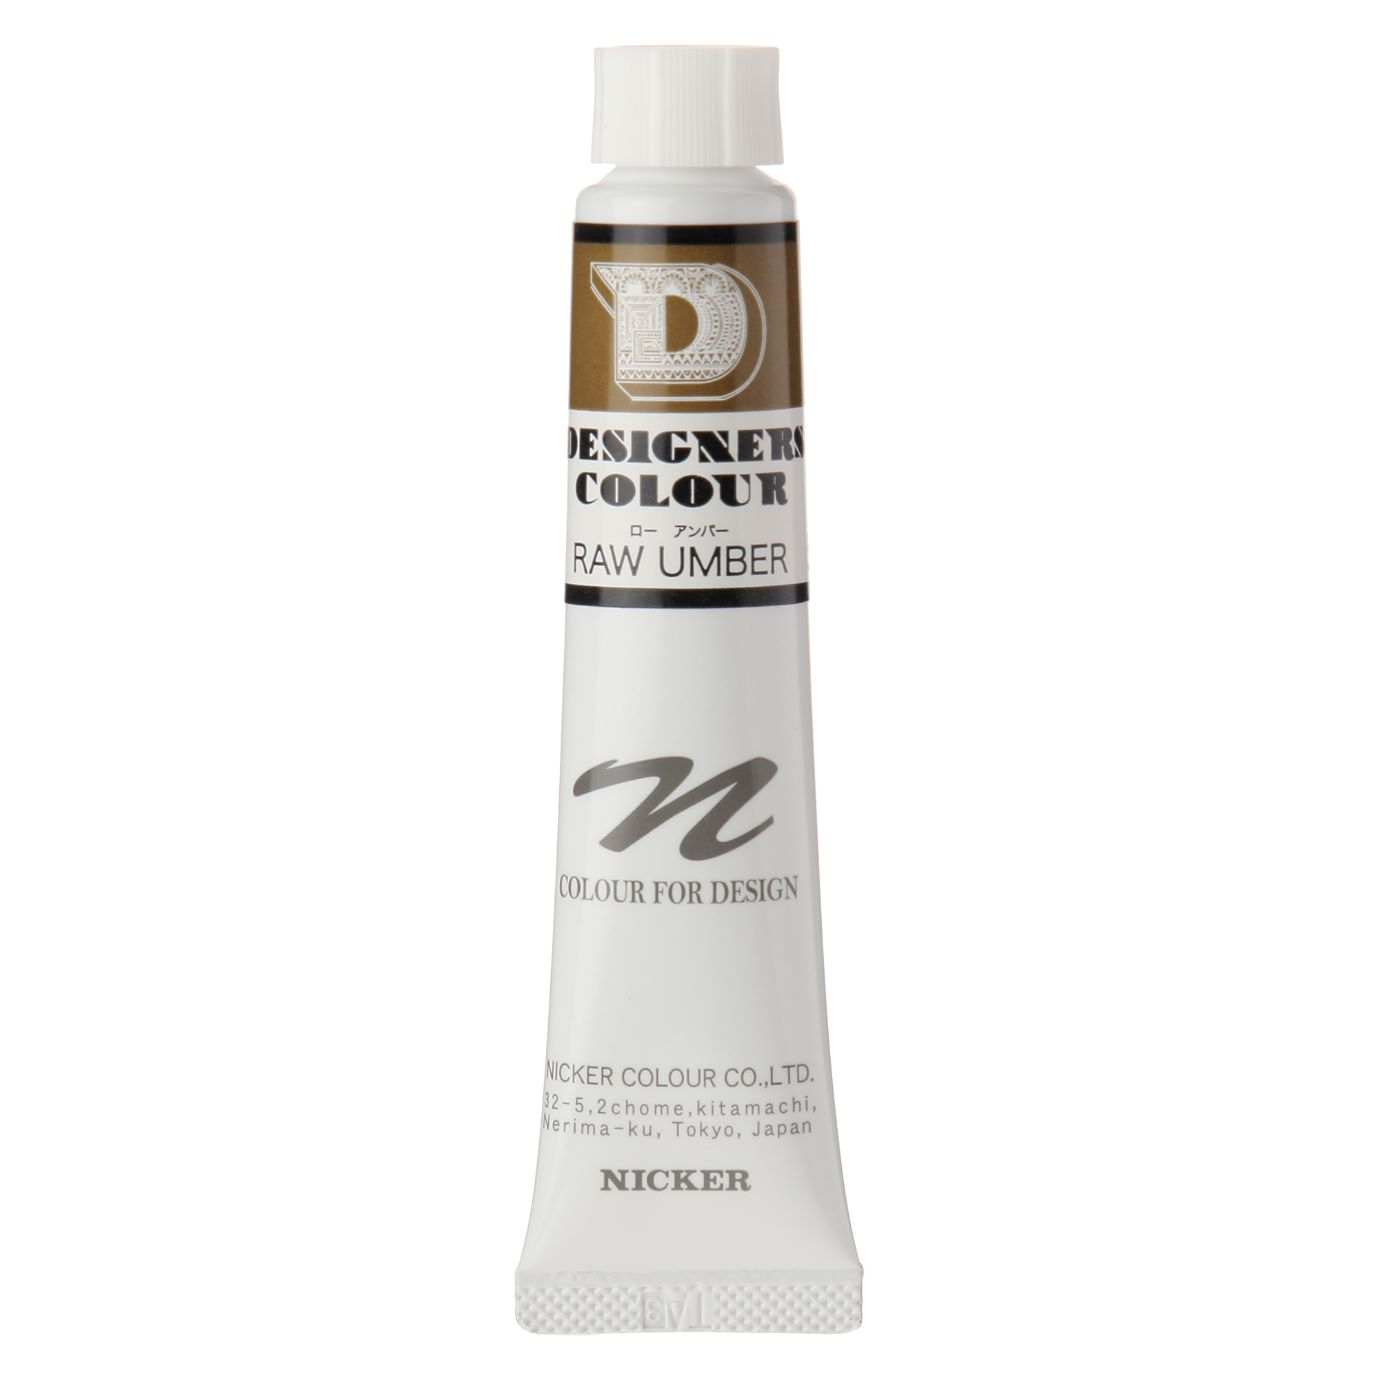 DESIGNERS COLOUR 20ml 507 RAW UMBER